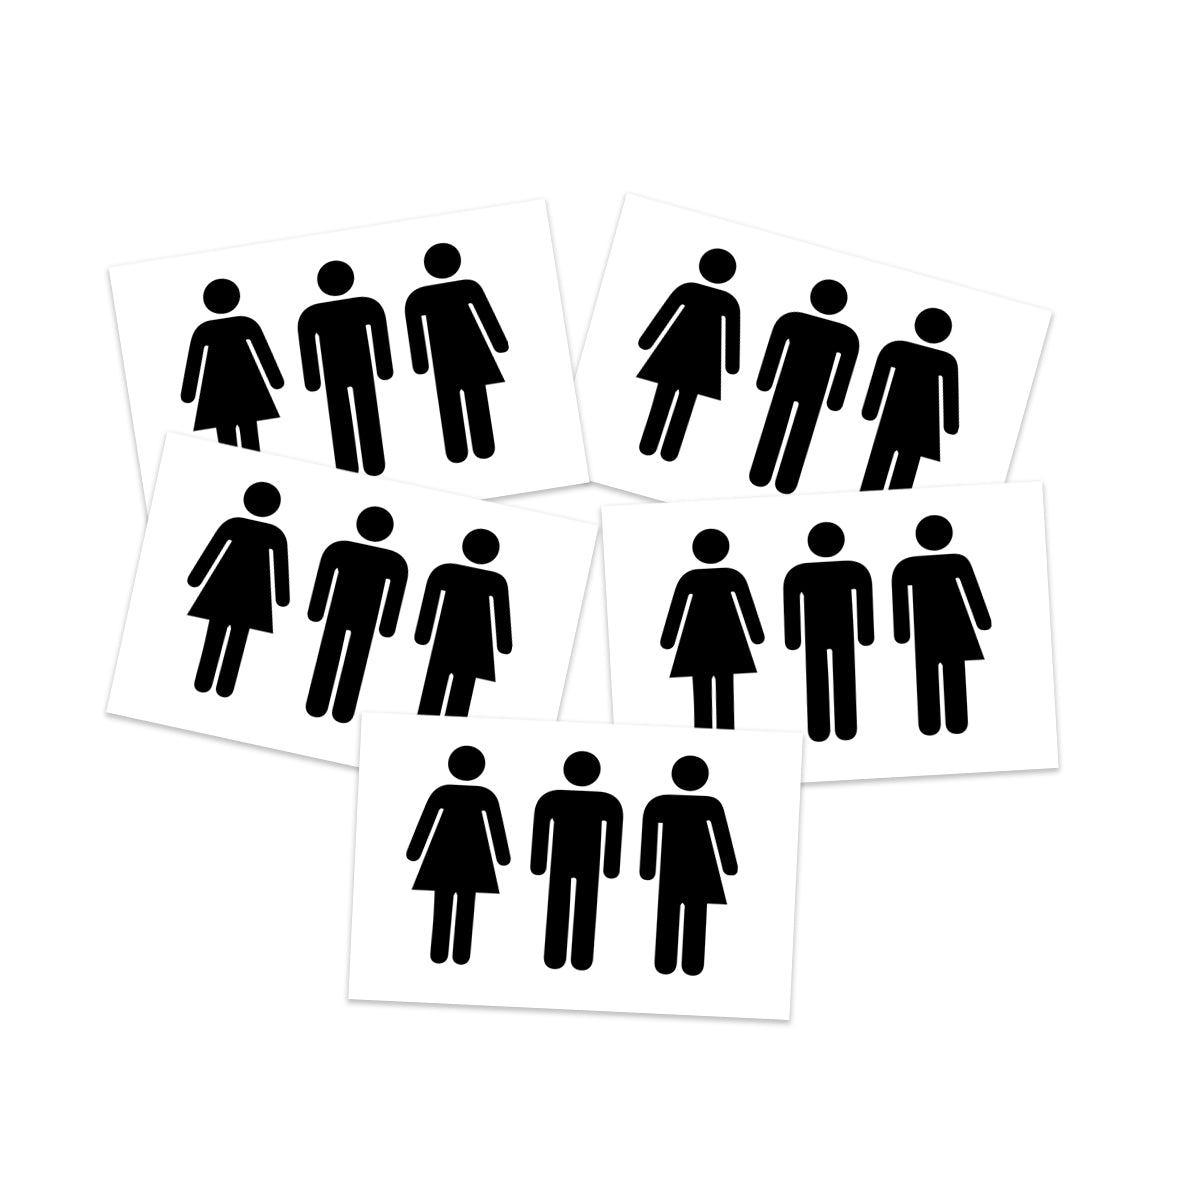 Gender Neutral Flag (10-Pack)